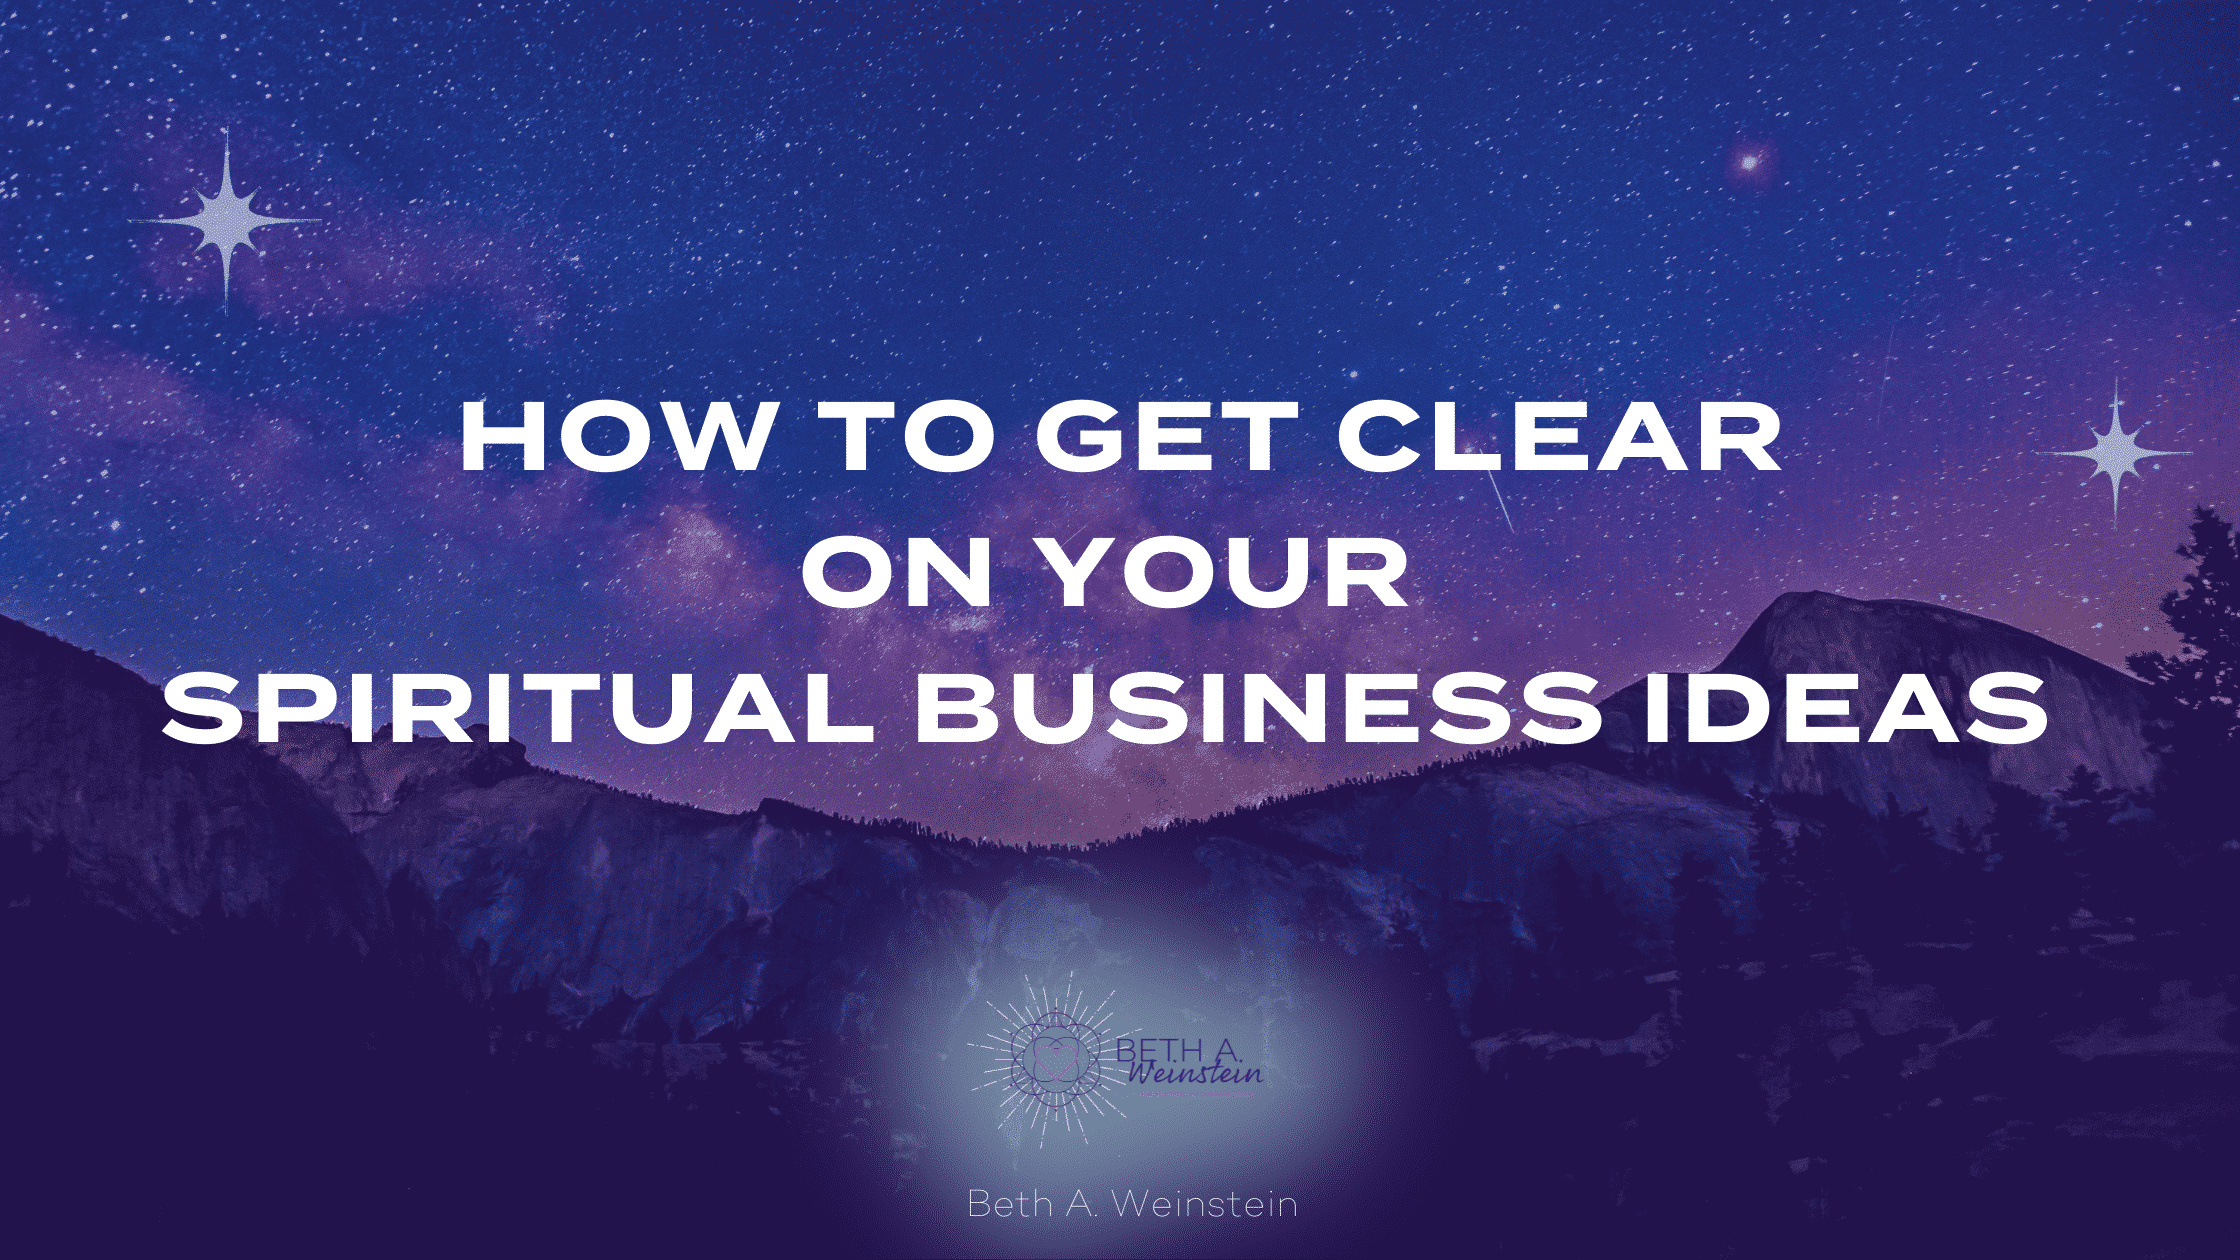 How To Get Clear on Your Spiritual Business Ideas